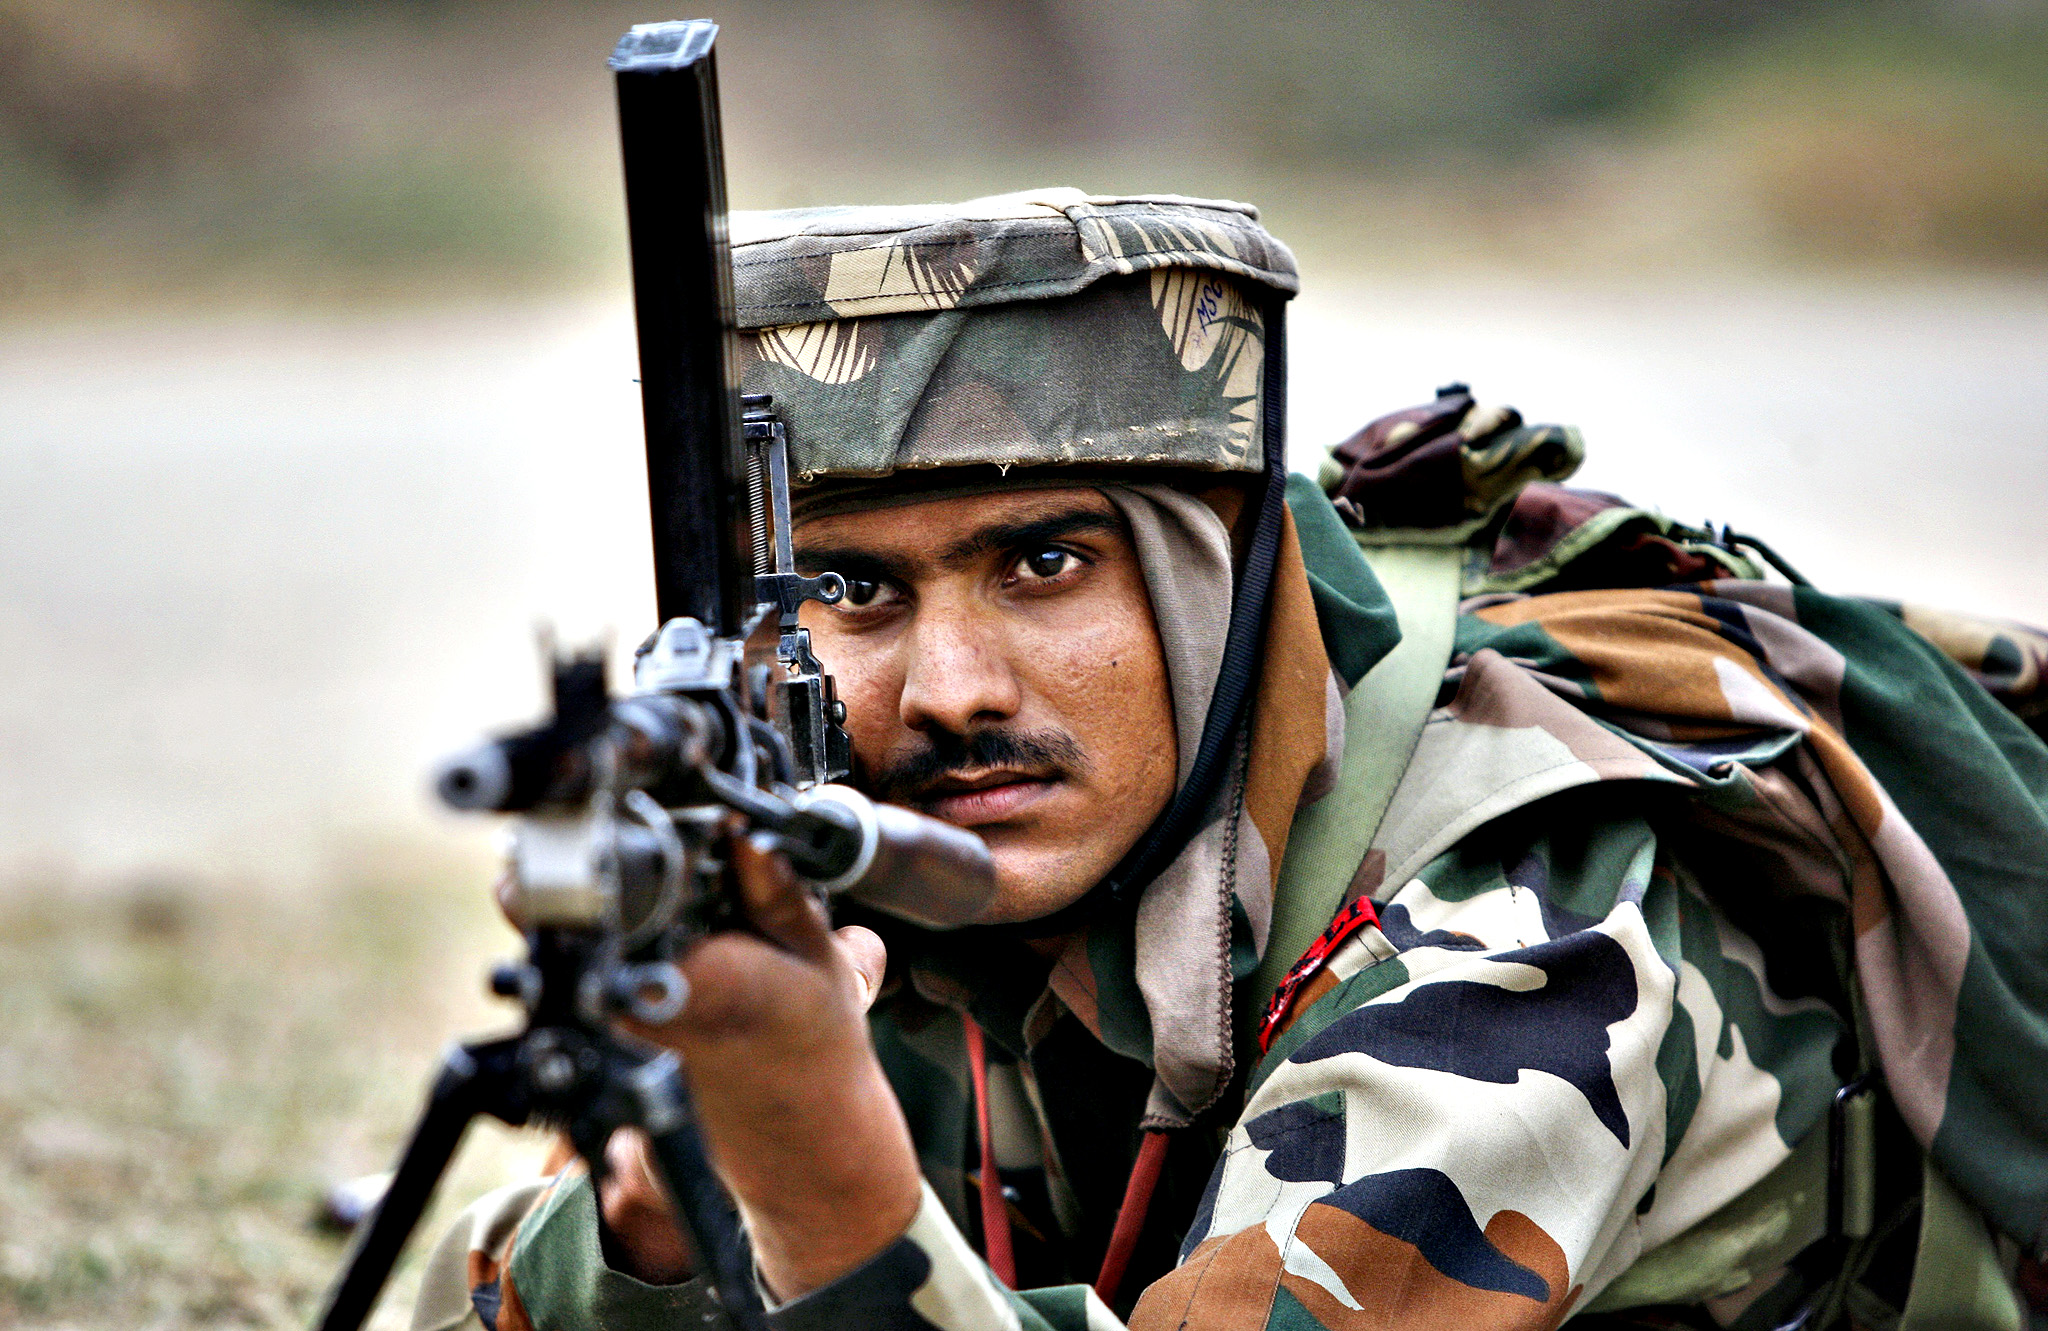 An Indian Army soldier takes position during an encounter with armed suspected militants at Pindi Khattar village in Arnia border sector, 43 kilometers (27 miles) south of Jammu, India, Thursday, Nov. 27, 2014. An army officer says some of the militants occupied an abandoned bunker in Jammu region early Thursday and fired at the soldiers in Arnia sector in the Indian portion of Kashmir.